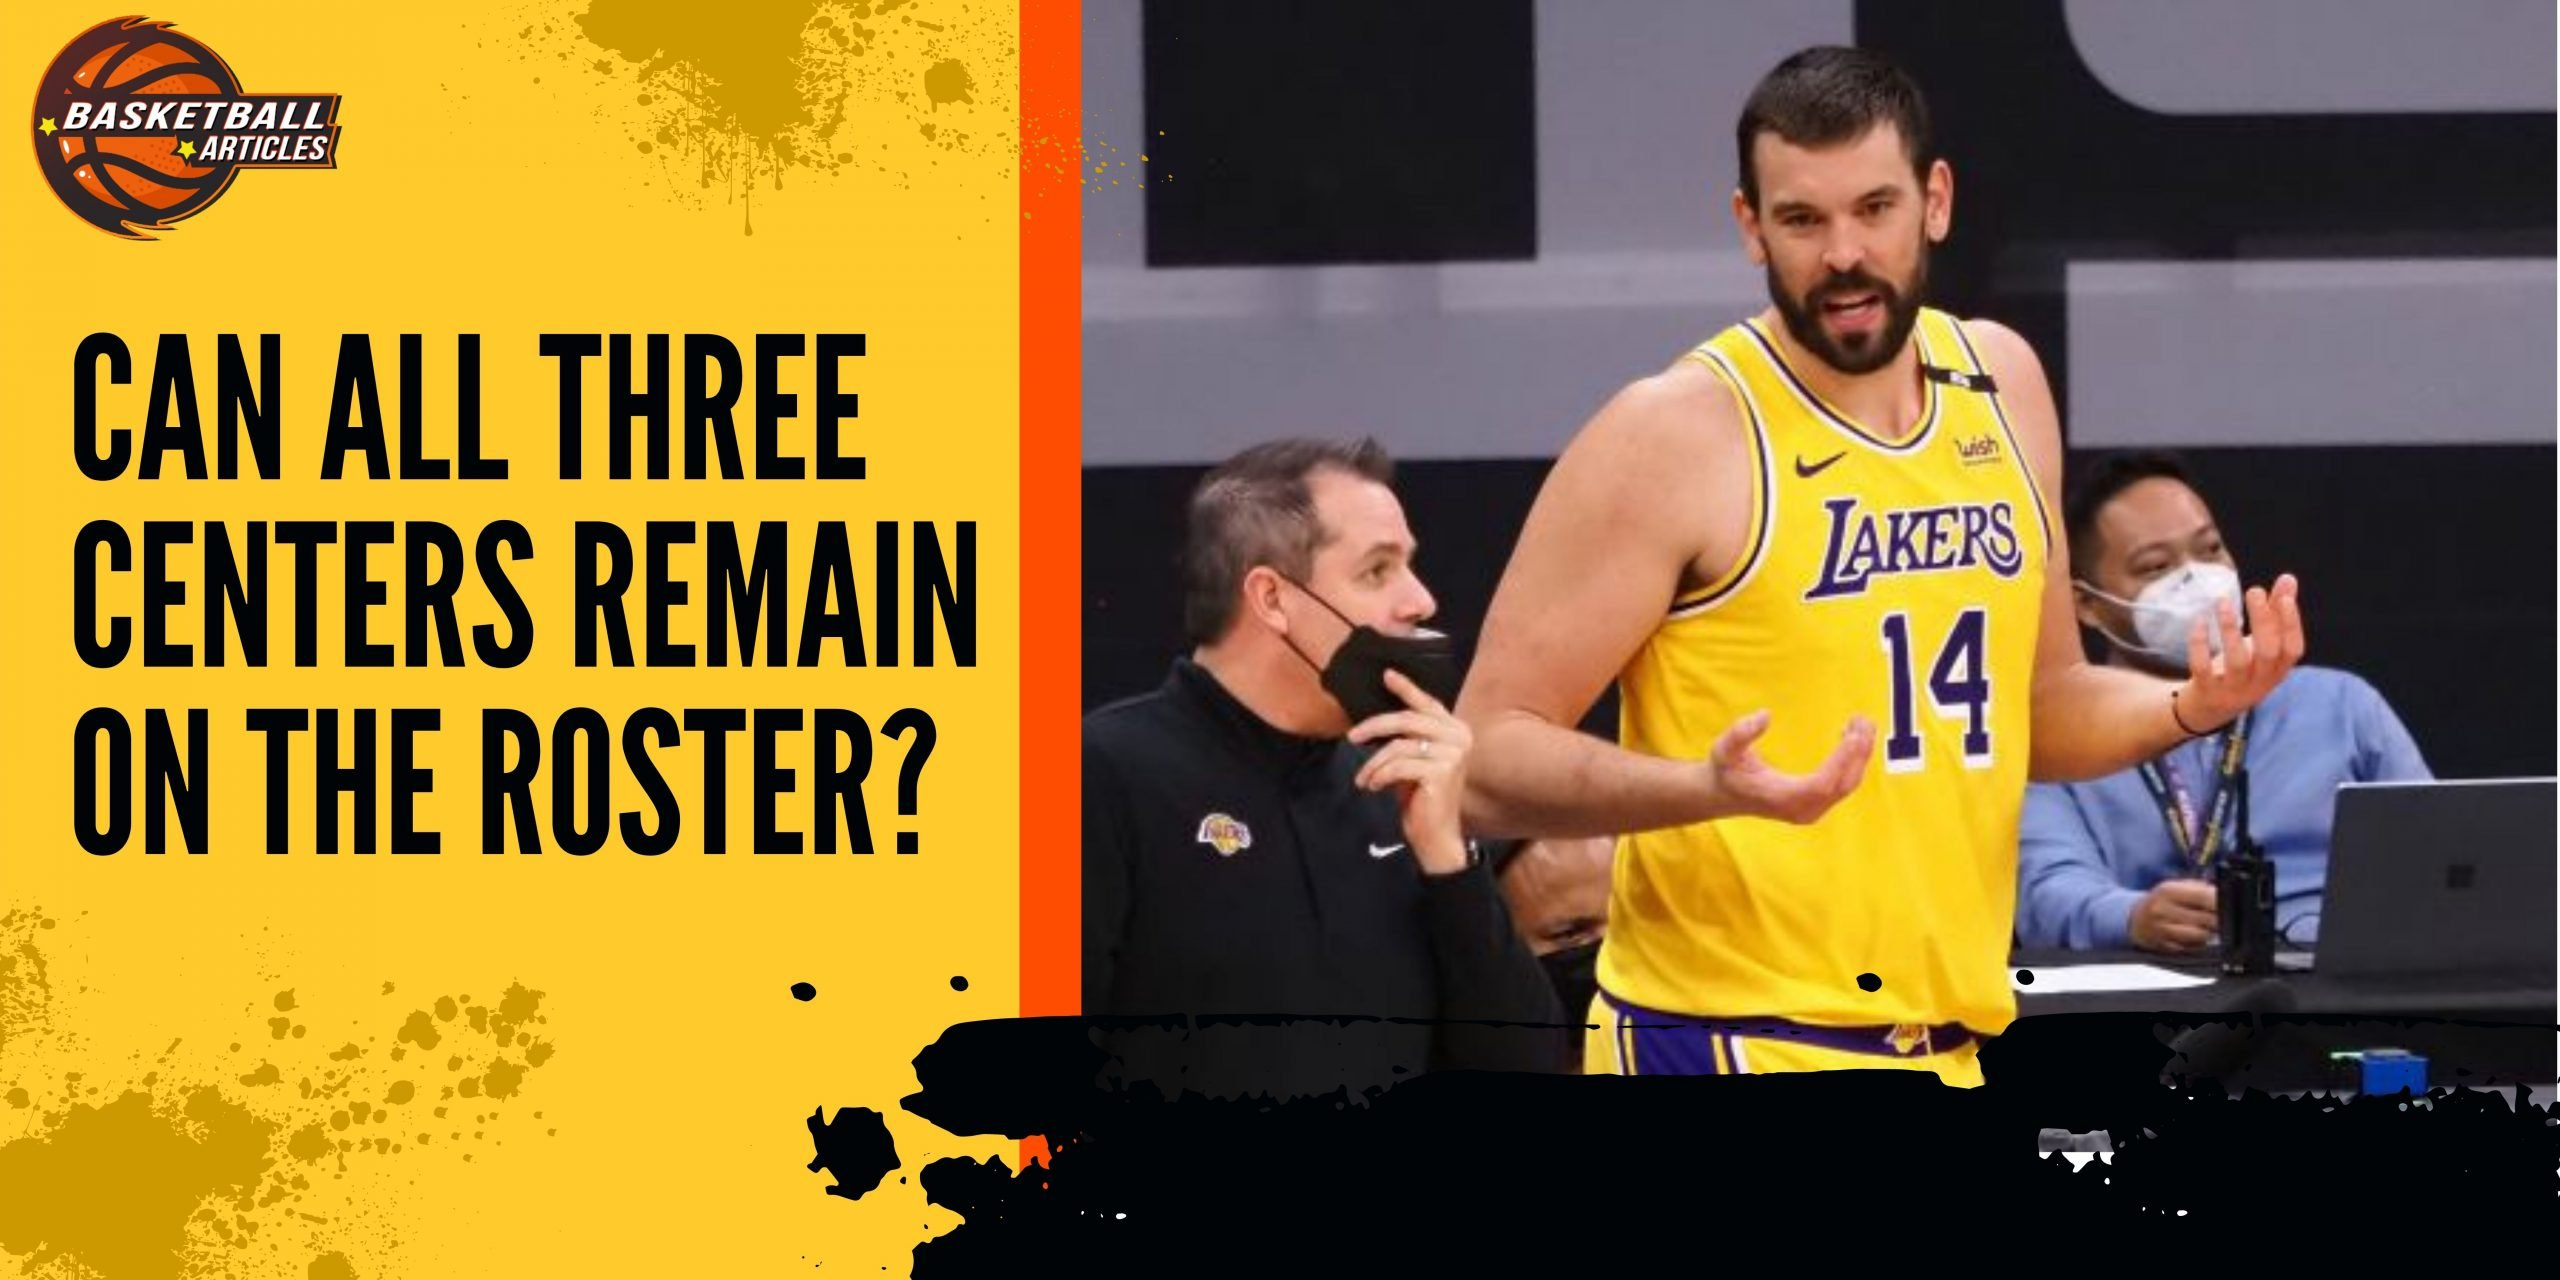 Can All Three Centers Remain on the Roster?